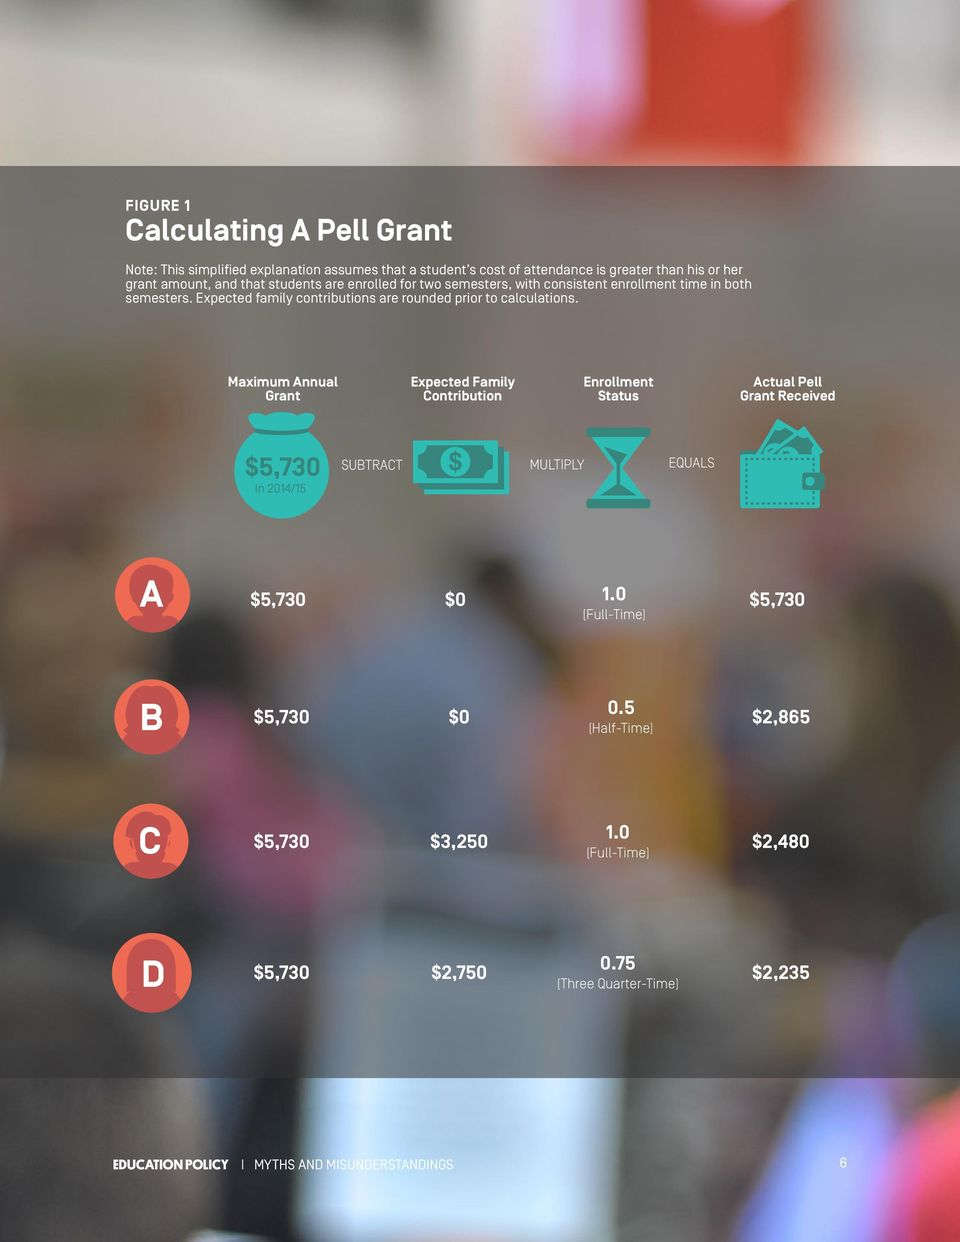 Maximum Annual Grant Expected Family Contribution Enrollment Status Actual Pell Grant Received $5,730 in 2014/15 SUBTRACT MULTIPLY EQUALS A $5,730 $0 1.